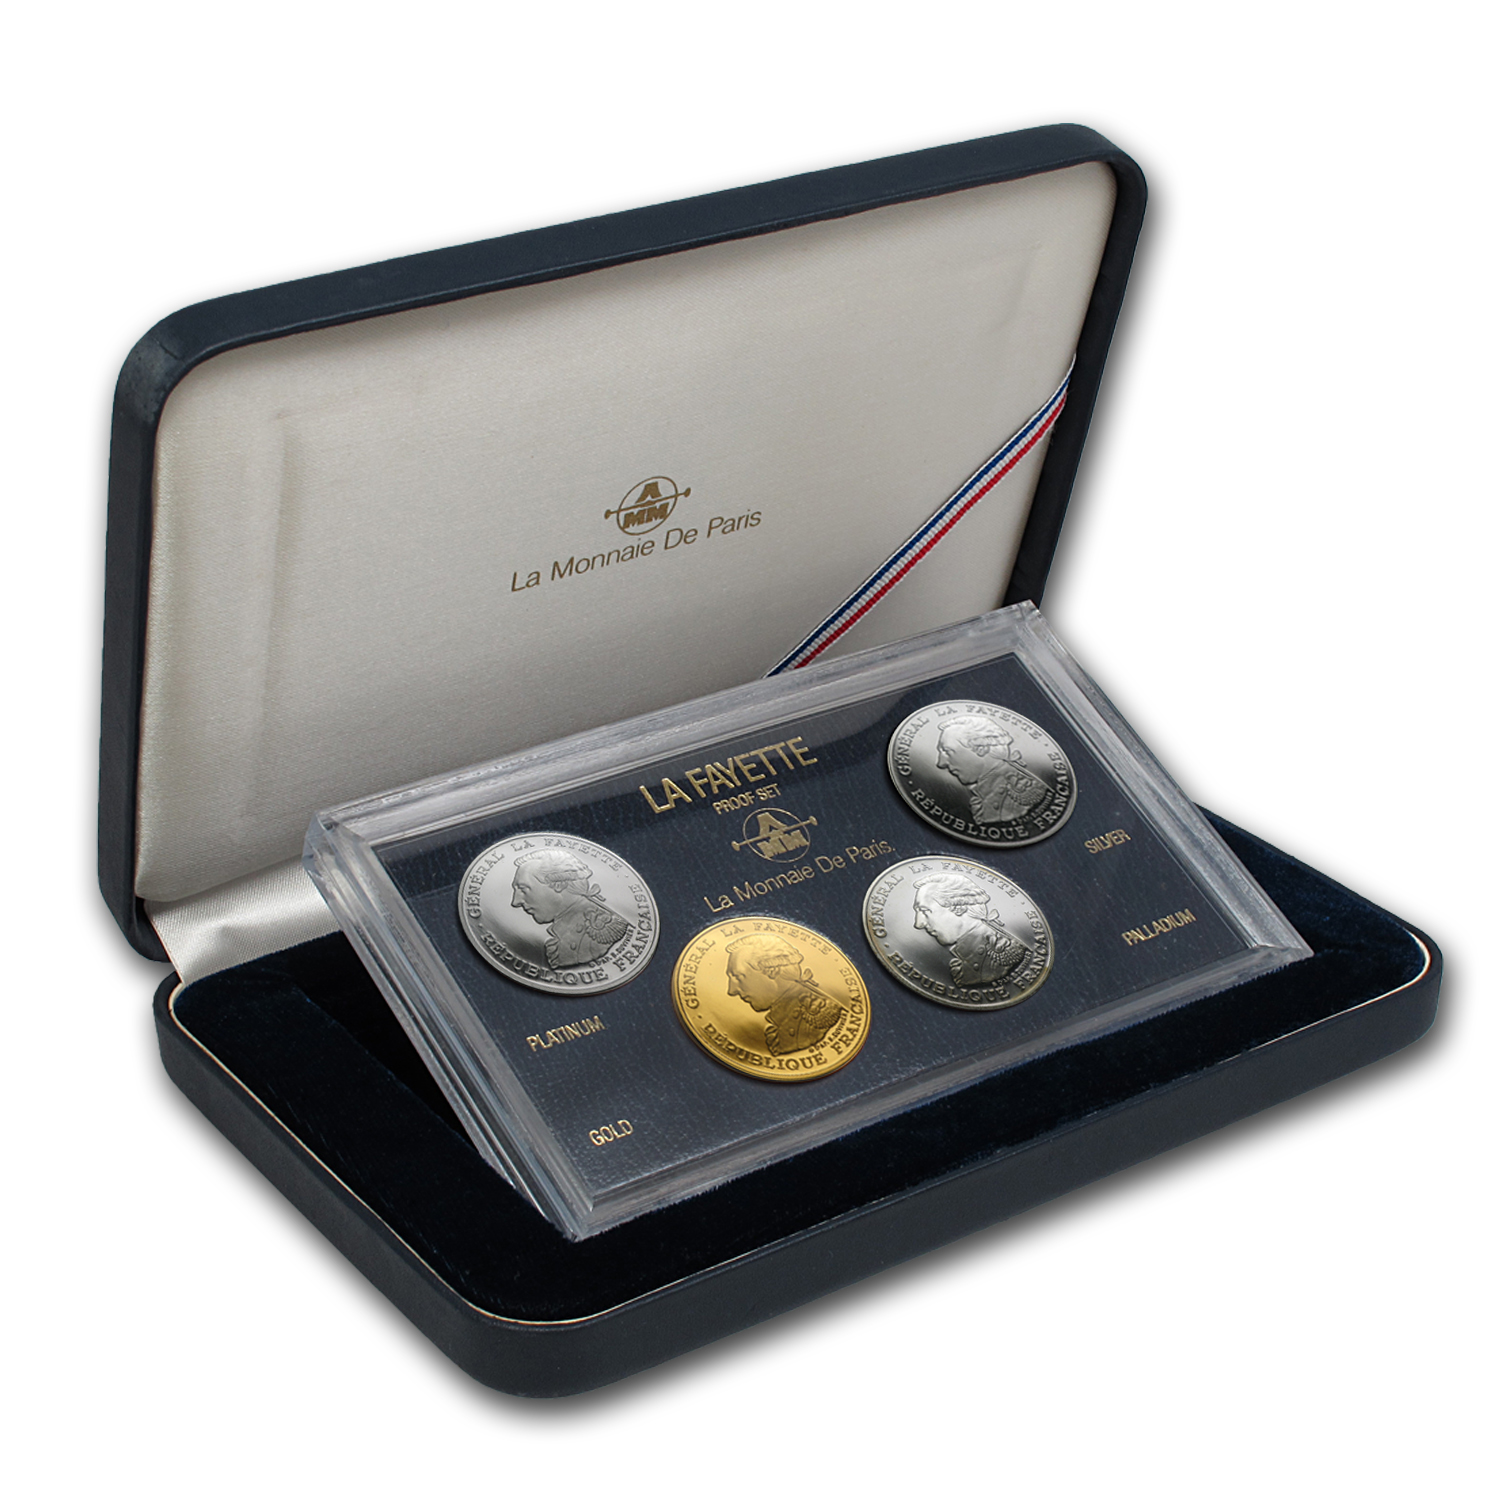 1987 France Plat/Pall/Gold/Silver 100 Francs Proof Set